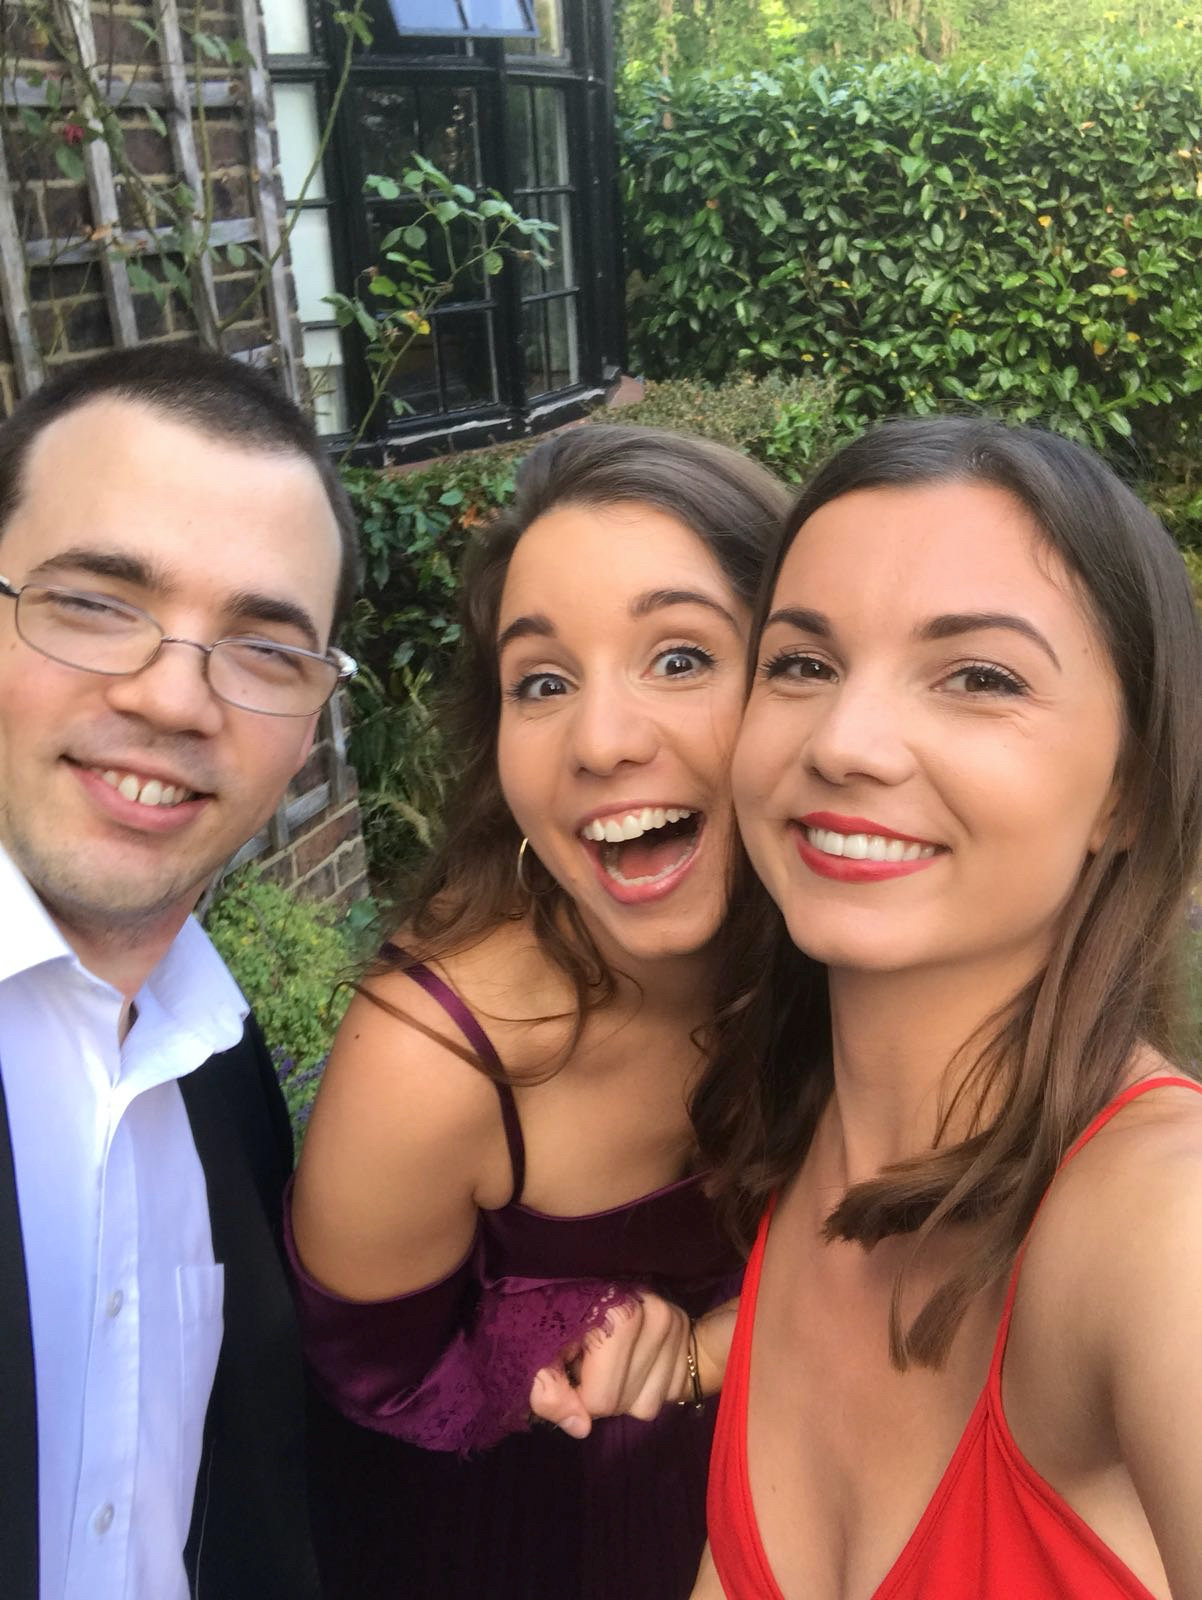 Me, my sister Jess and my brother Sam, dressed smartly and smiling for the camera in a slightly goofy way.